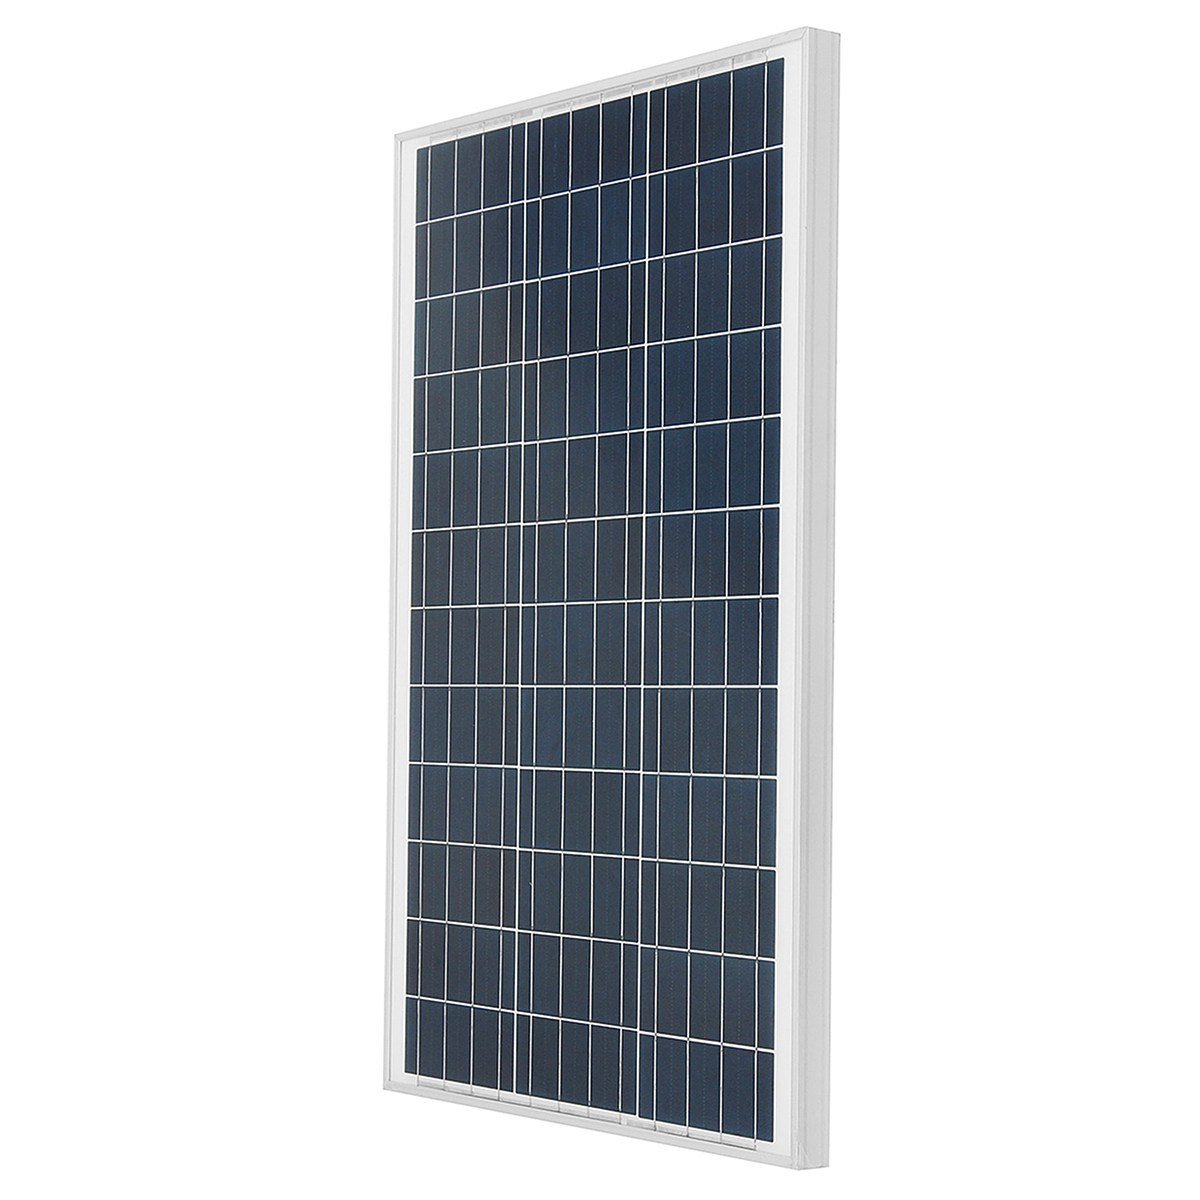 LEORY 60w 18v Solar Panel With Glass Bearing Plate Polycrystalline Silicon Solar System Supply Suitable For Car Battery 100w folding solar panel solar battery charger for car boat caravan golf cart